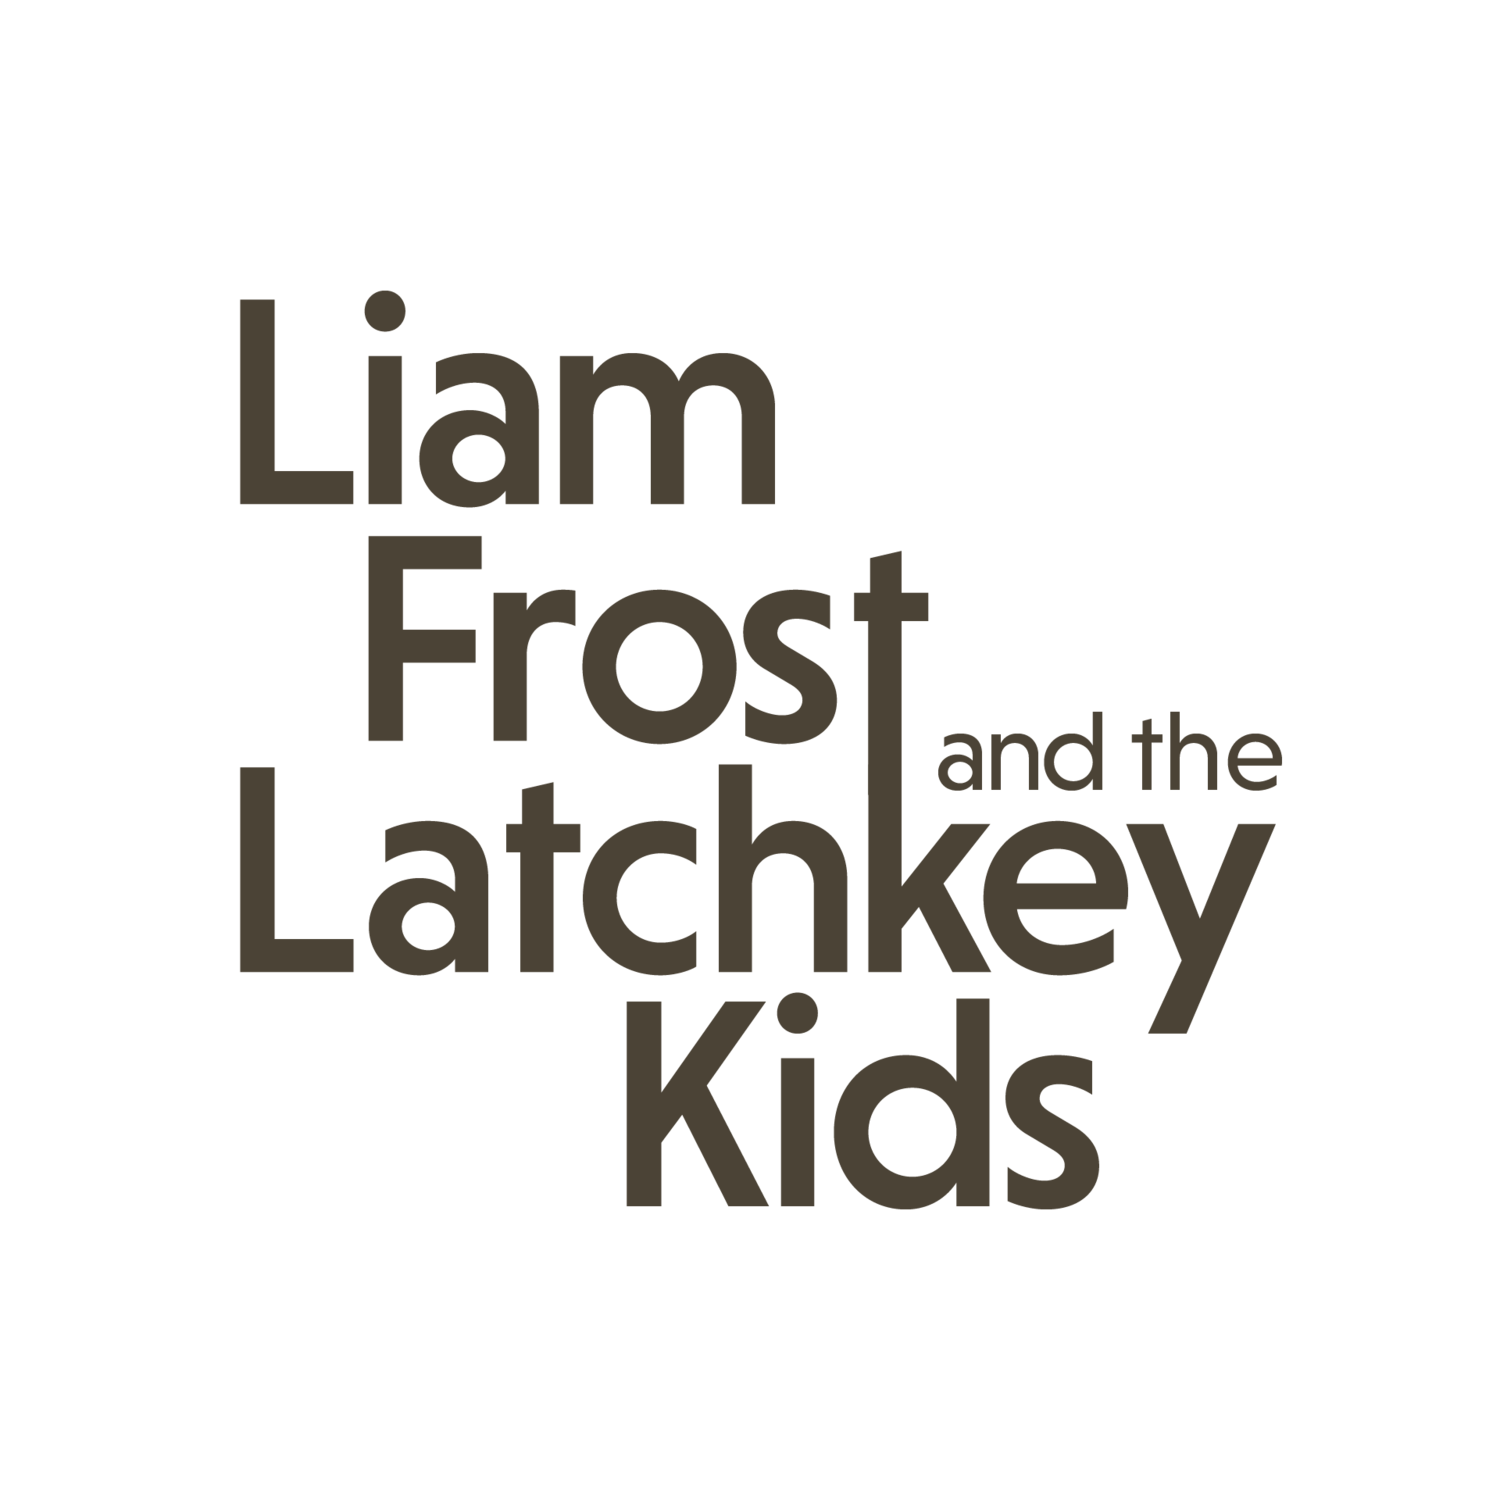 Liam Frost and the Latchkey Kids